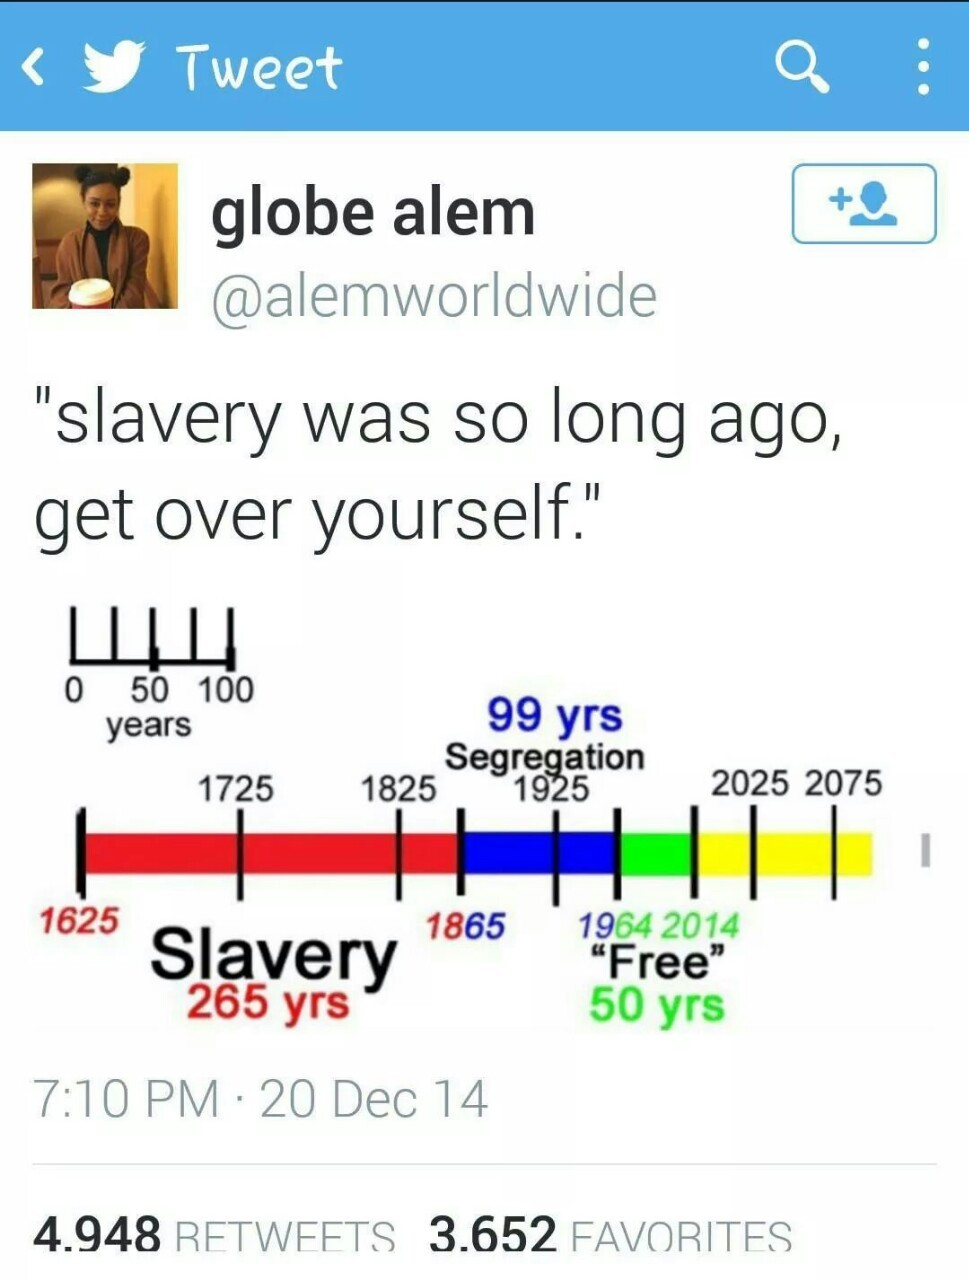 elaichi-cha :    bilt2tumble :    dmc-dmc :      darvinasafo :     Forever Reblog     There are people still benefiting off of the money made in slave trade as well     There are people alive TODAY, who's grandparents were slaves.     There are also people alive today who were slave masters, lynchers, segregationists etc.